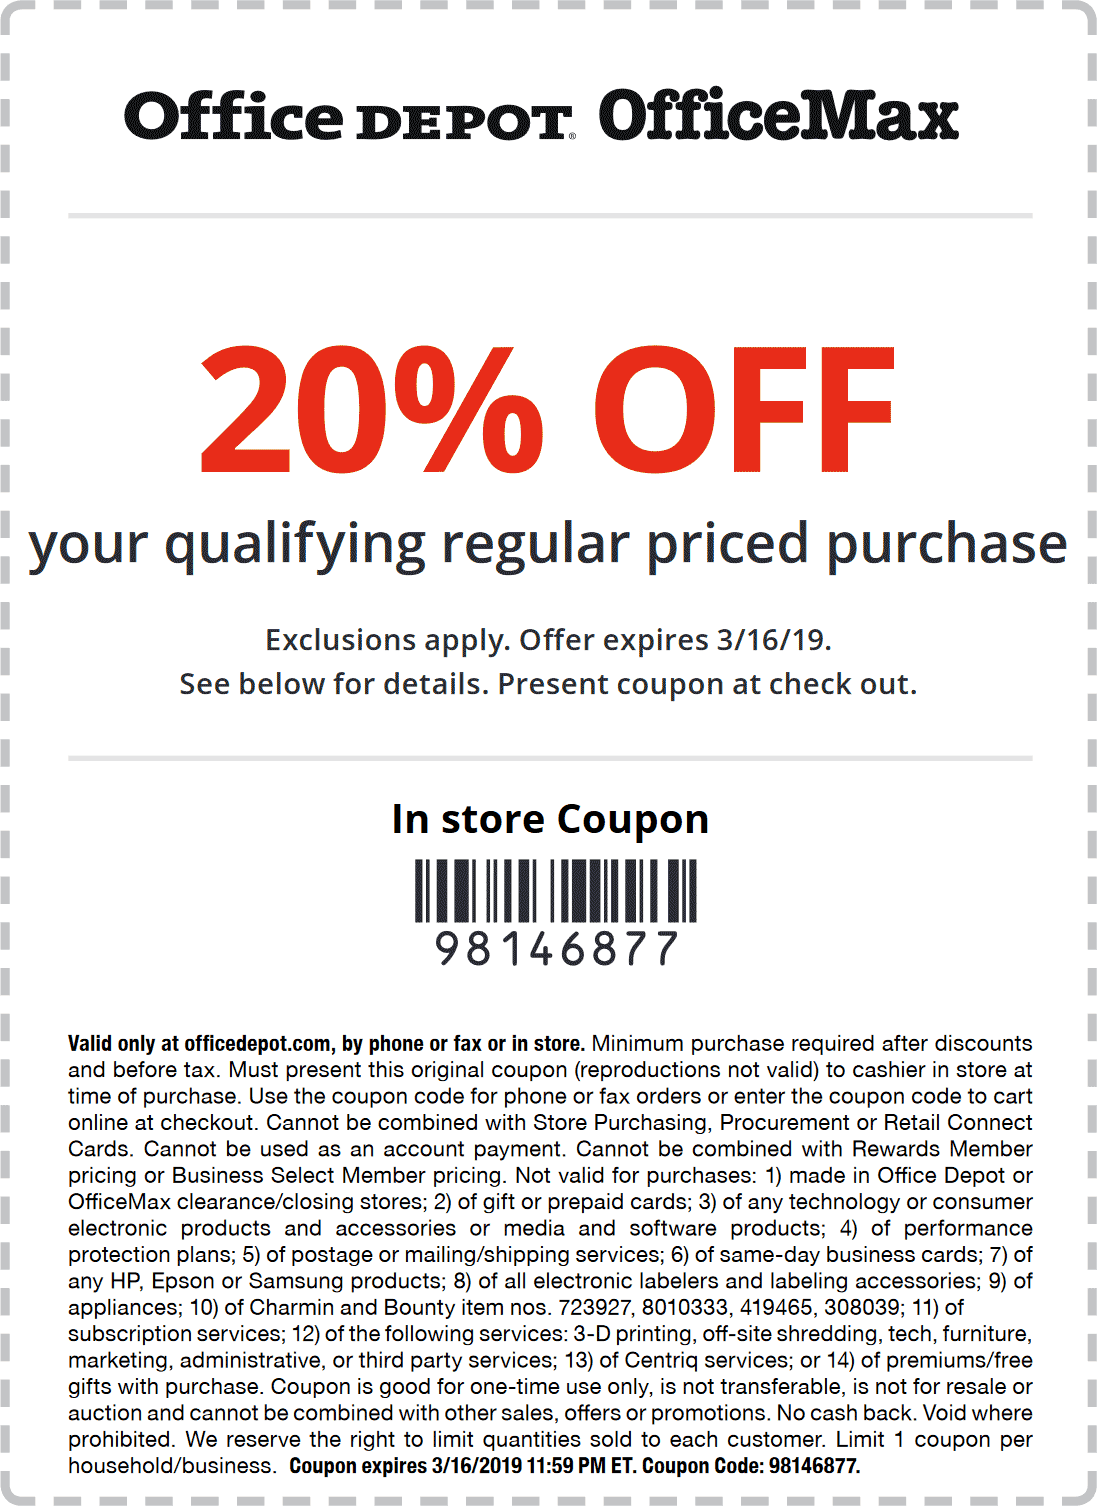 Office Depot Coupon February 2020 20% off at Office Depot, or online via promo code 98146877